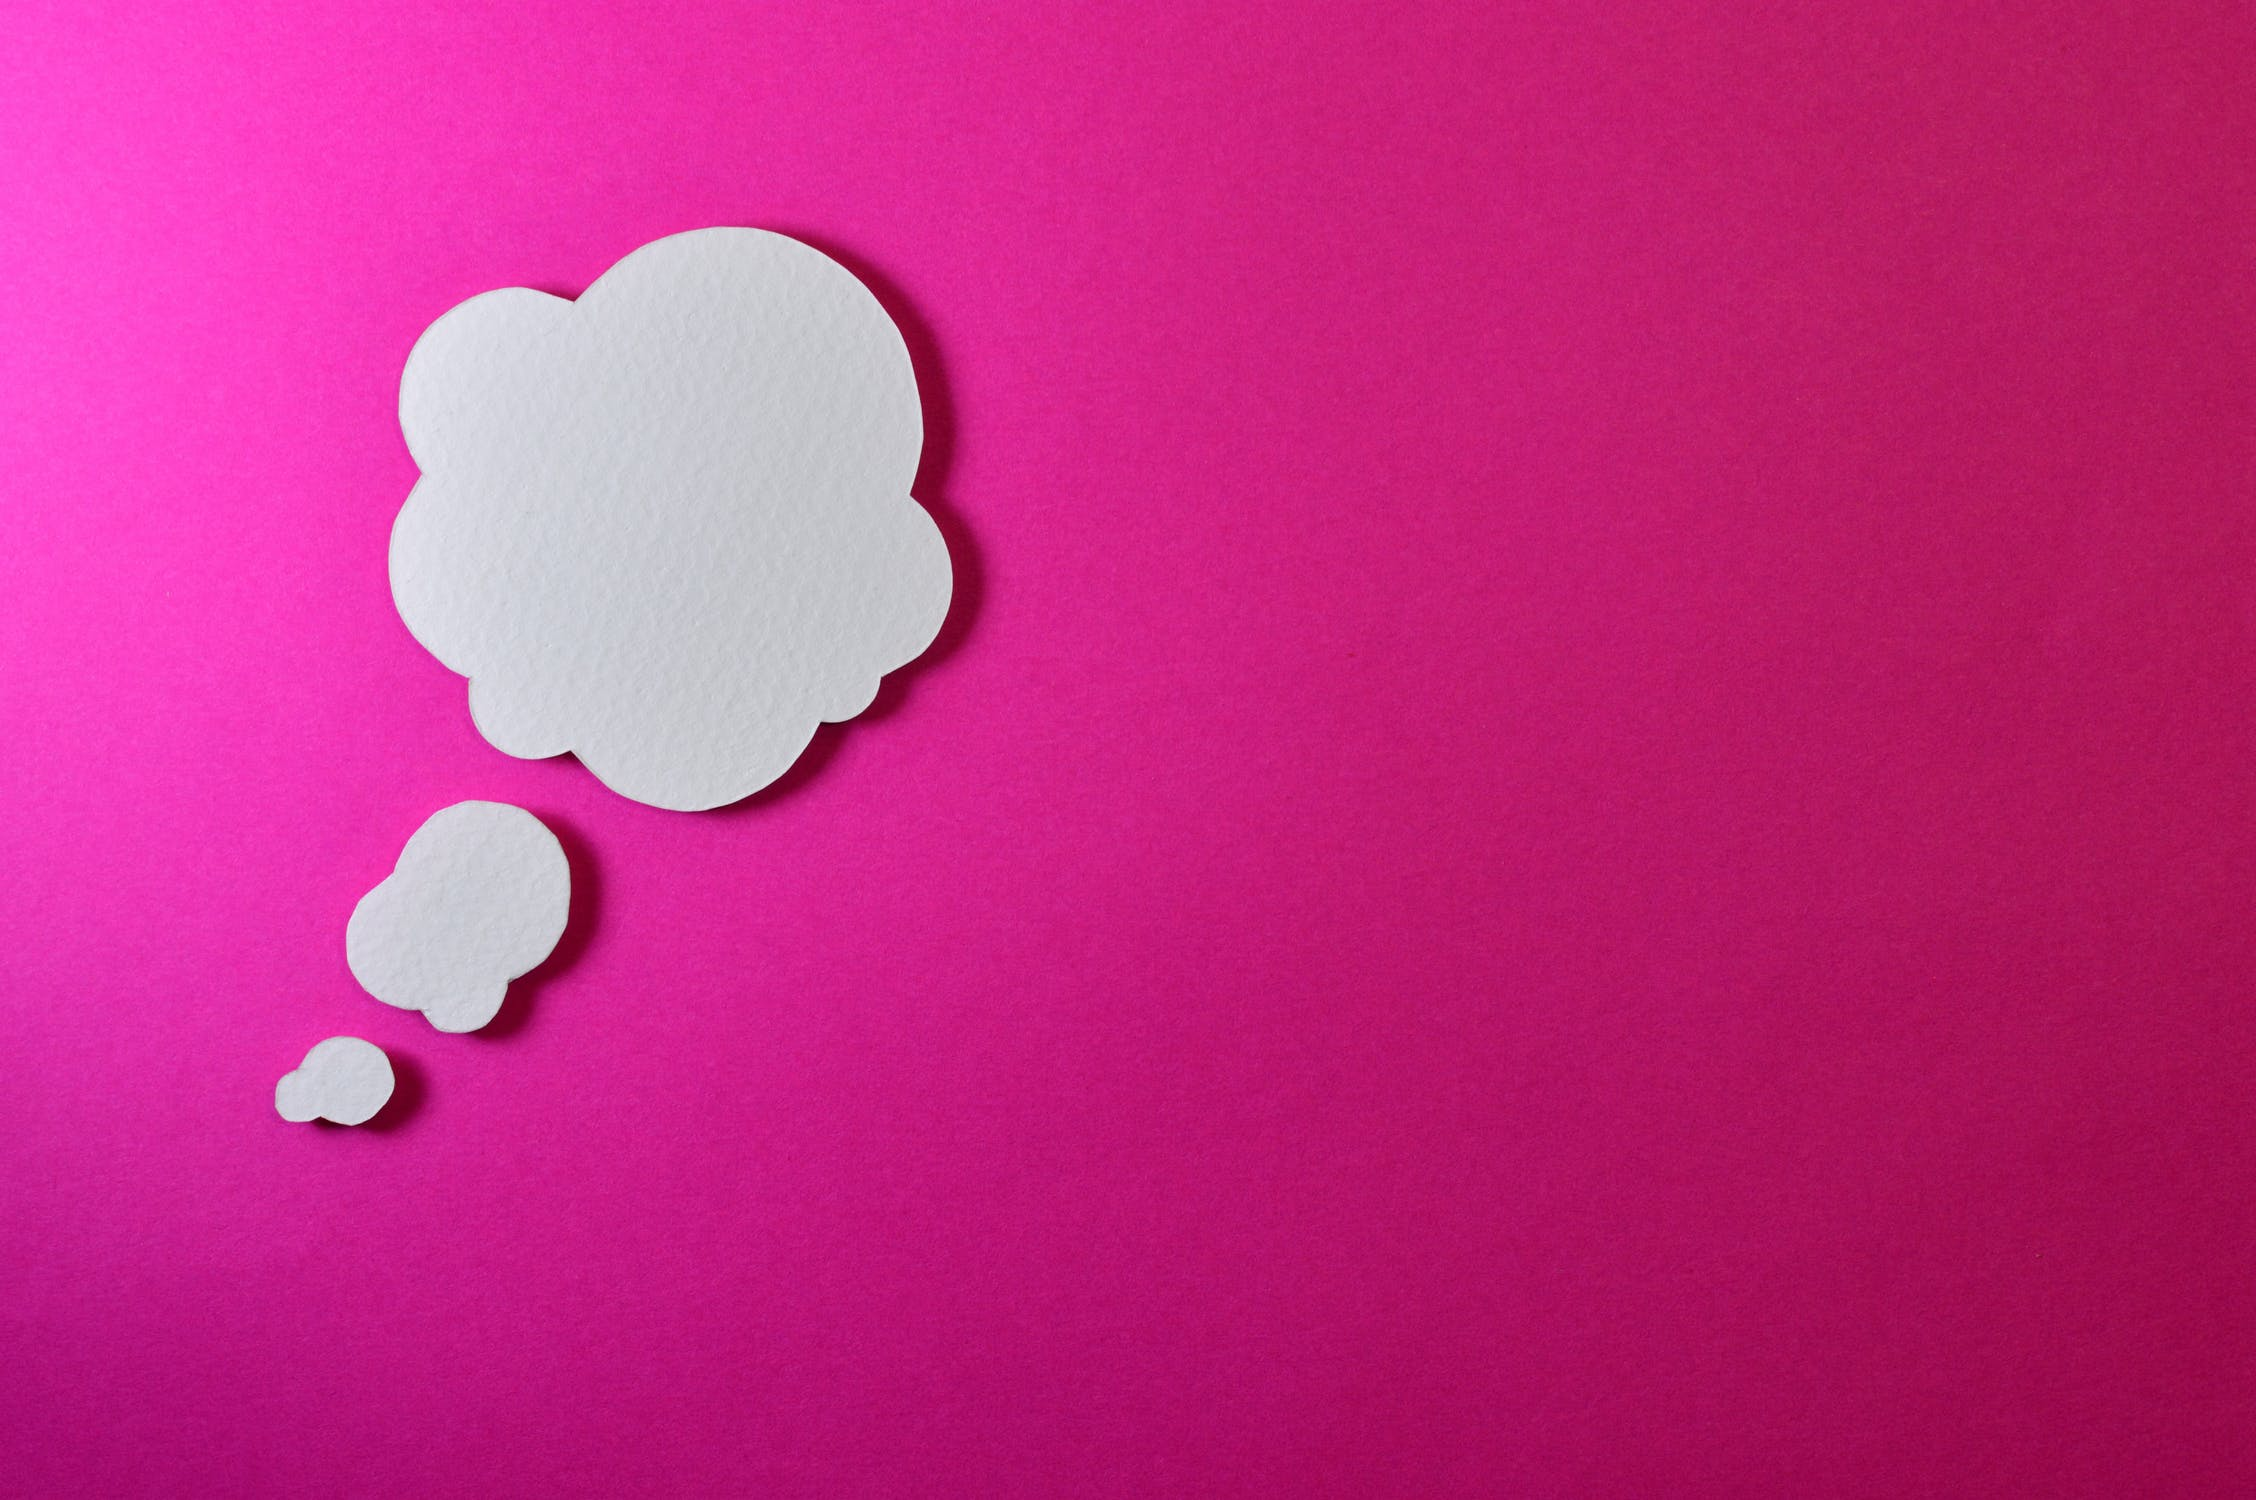 A thought bubble floating on a pink background